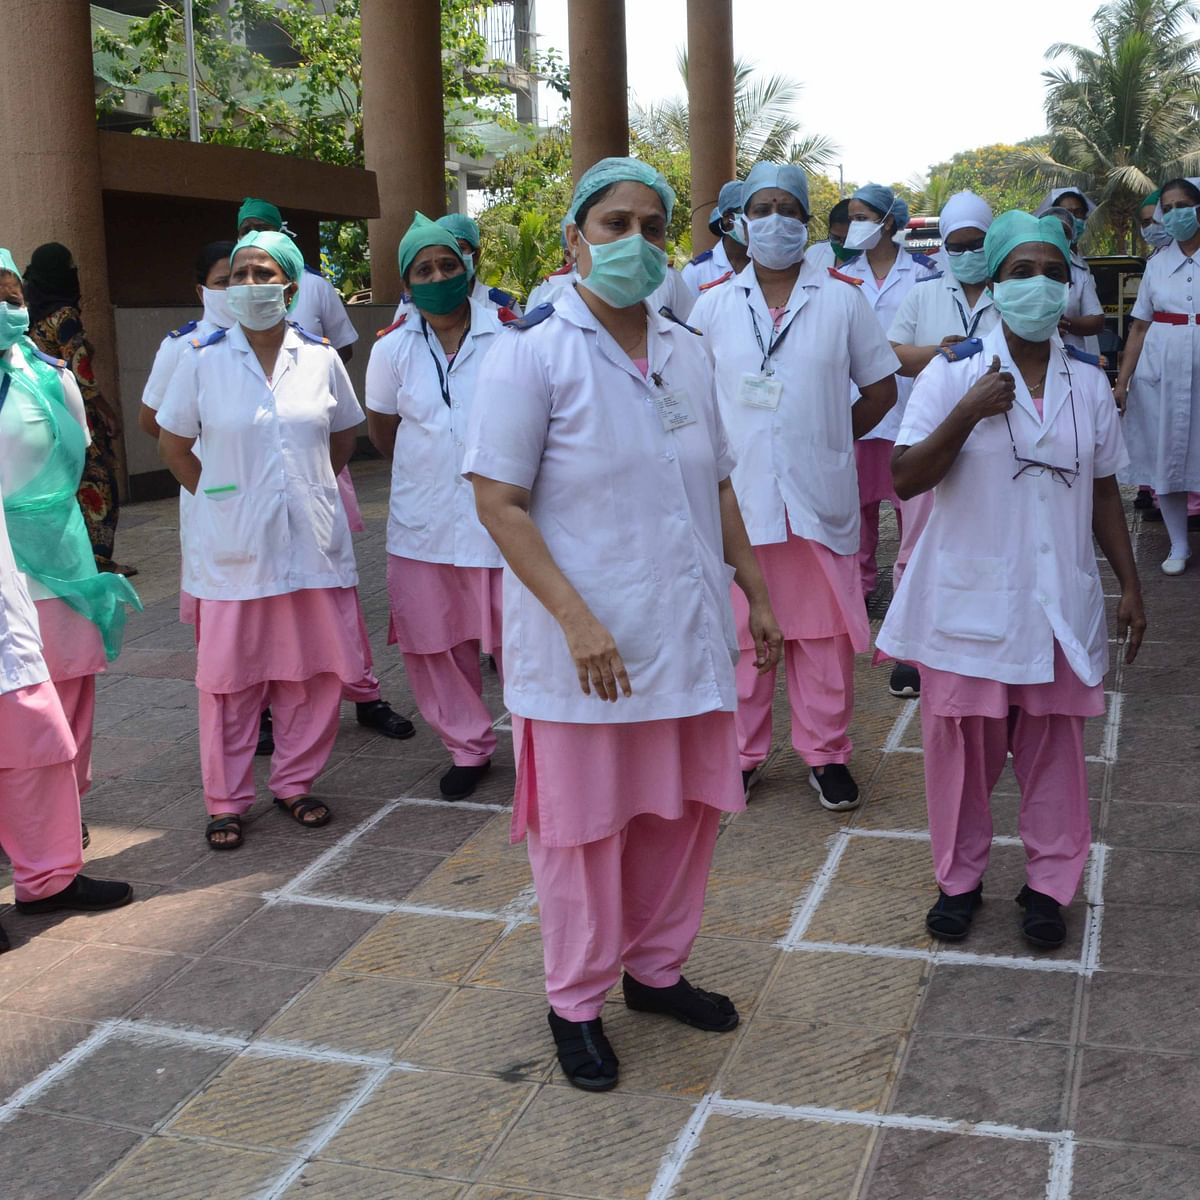 'Need protection beyond this epidemic': Healthcare professionals say over 1,000 doctors are attacked every month in India